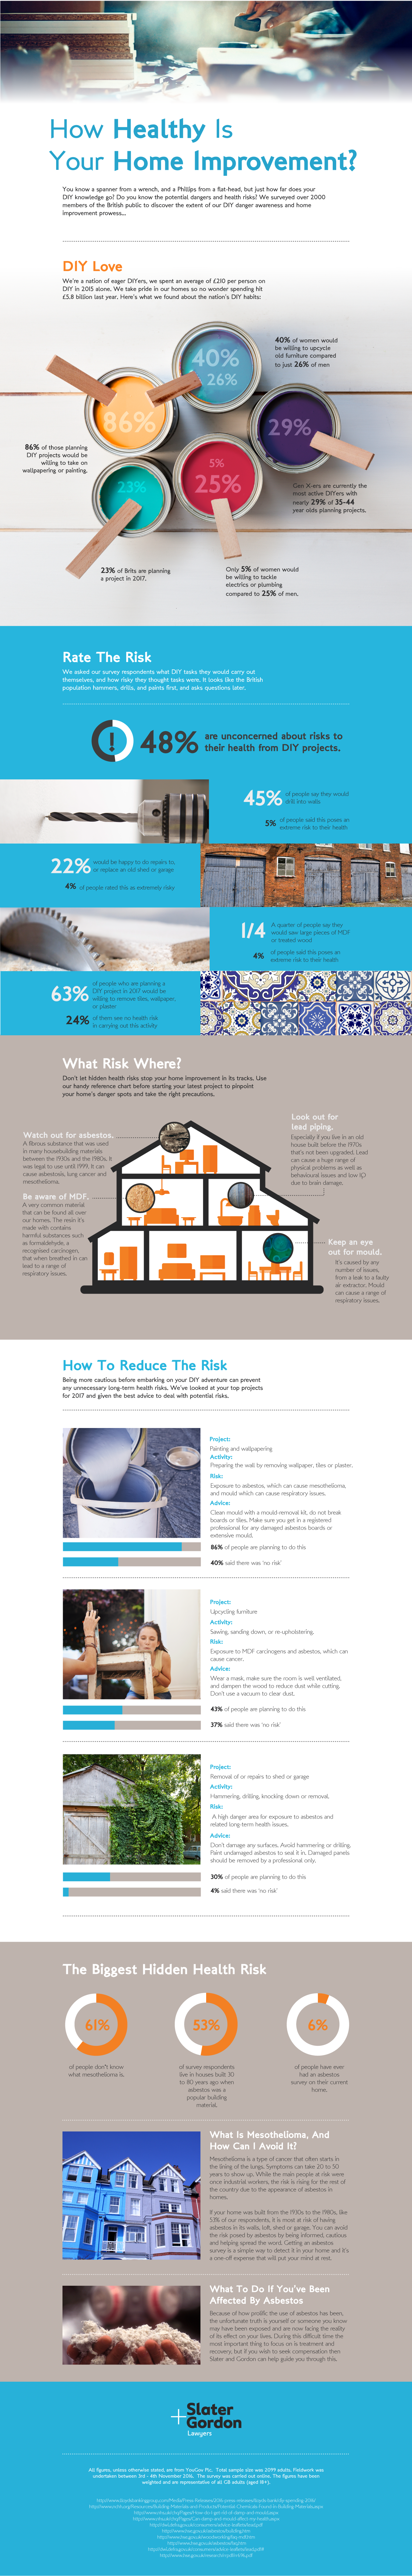 DIY safety infographic